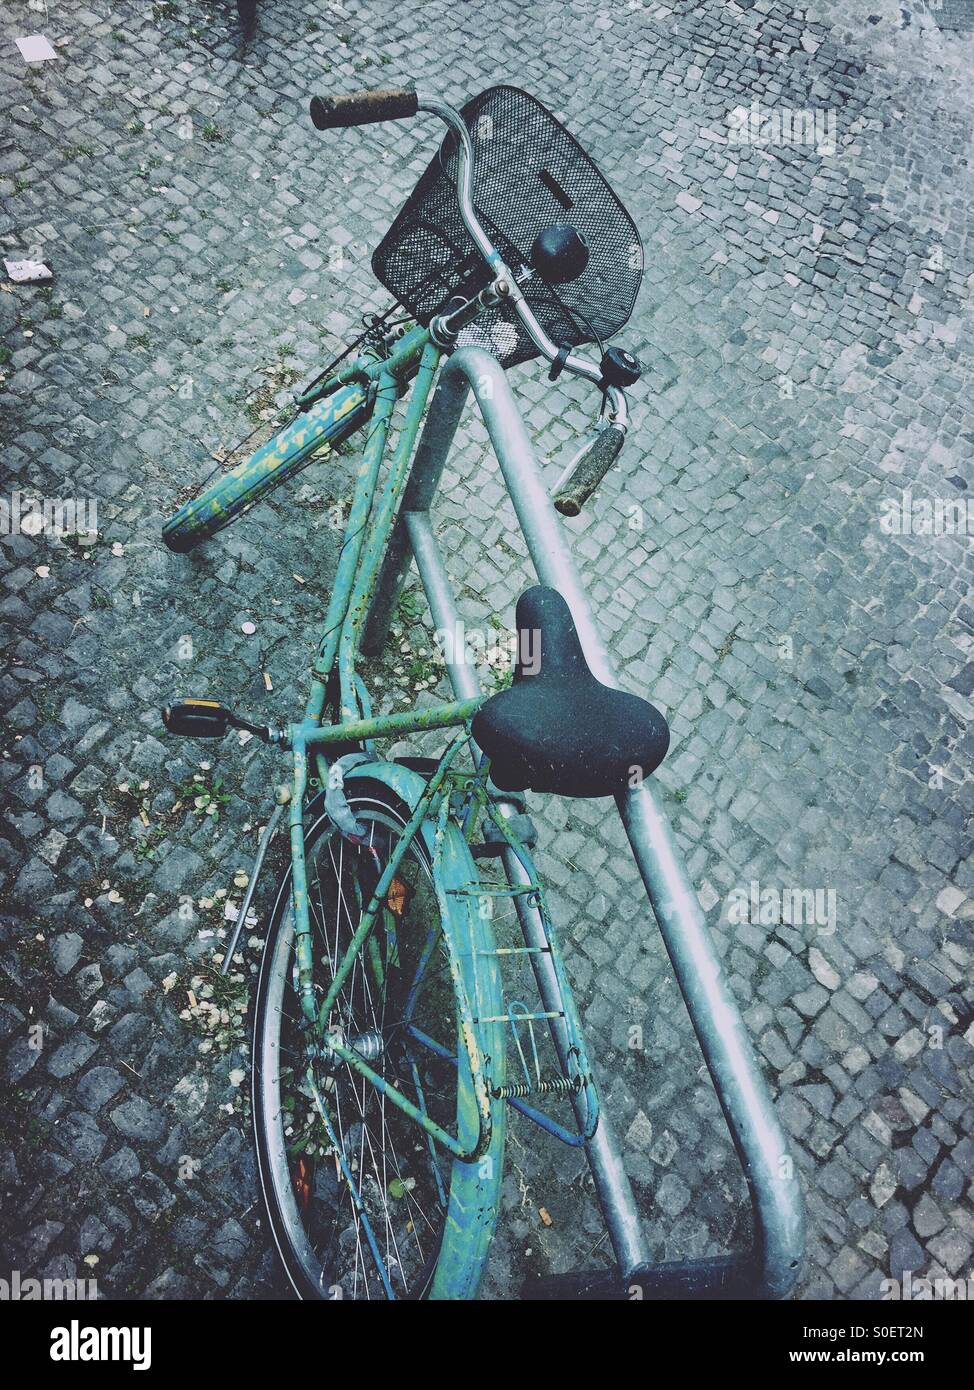 Old bicycle - Stock Image